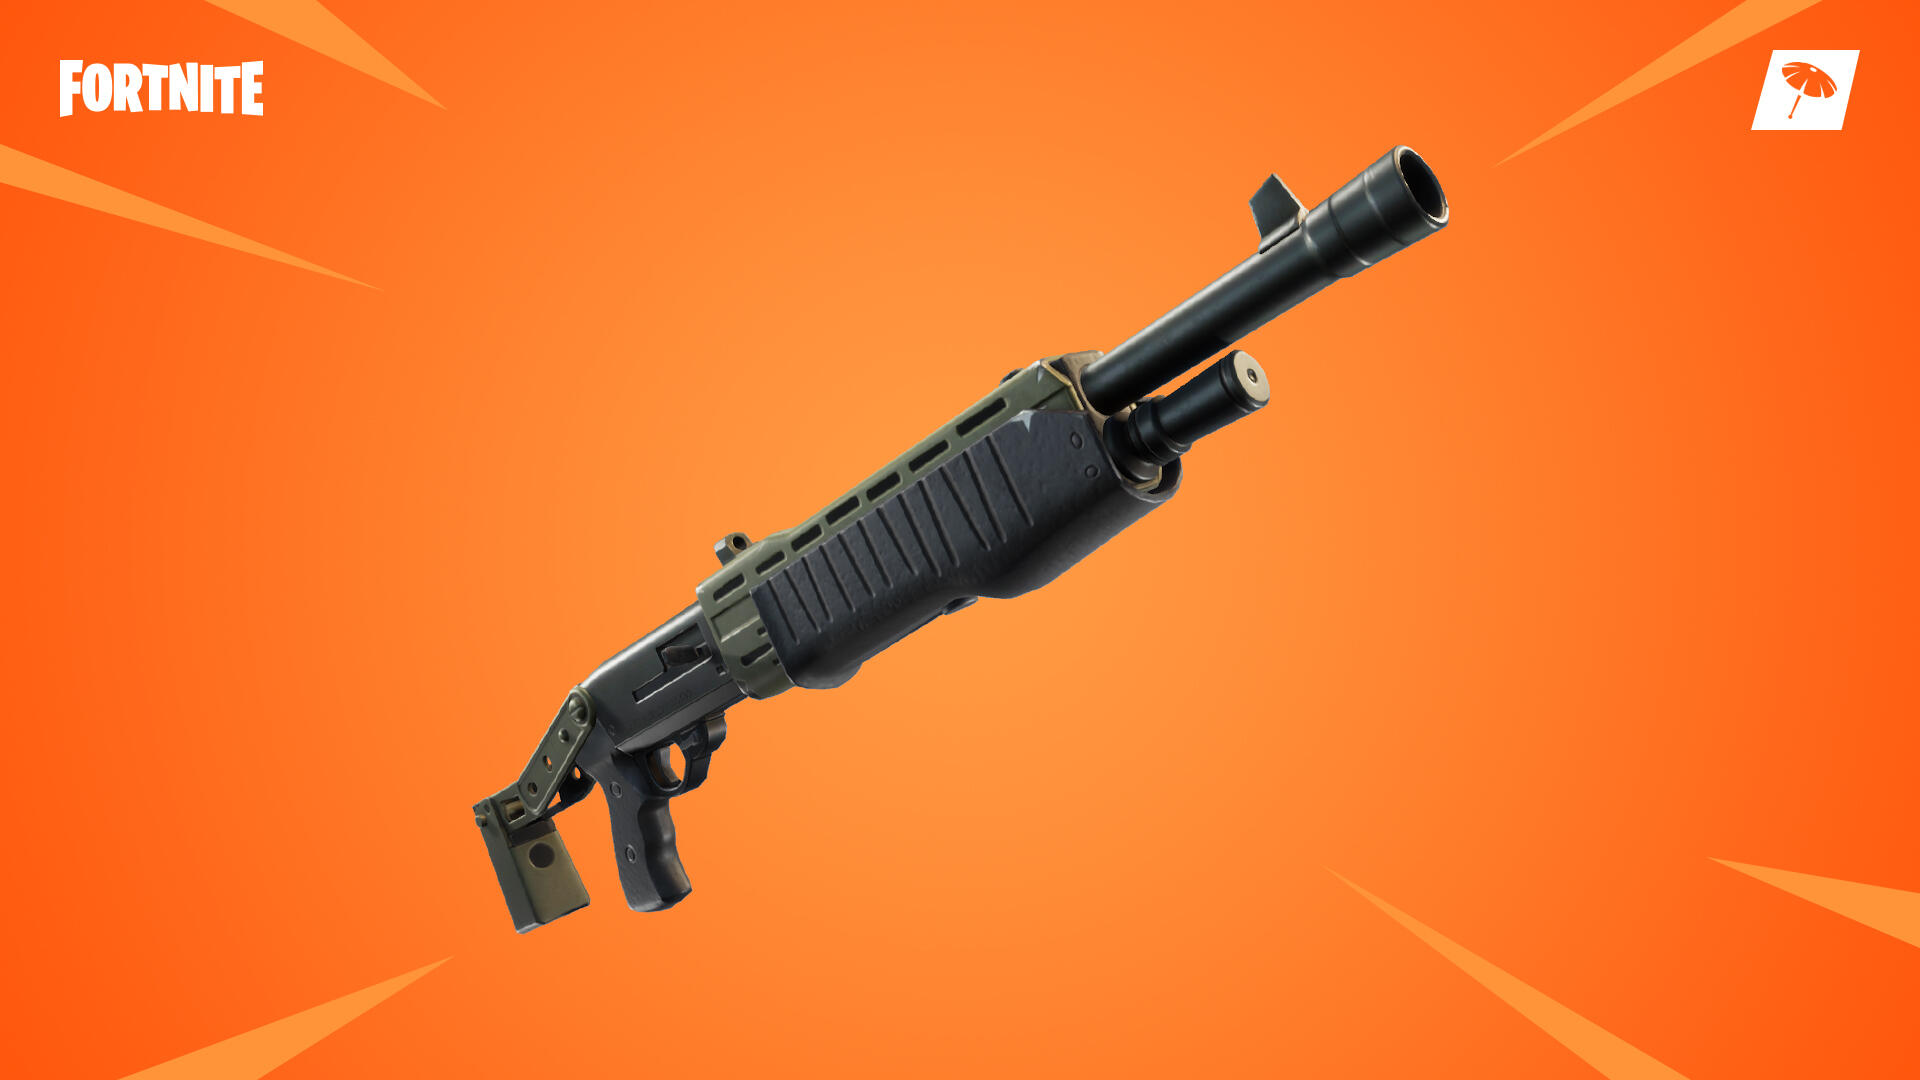 Fortnite V6.31 Patch Notes Released, Detail New Pump Shotgun and Team Rumble Mode